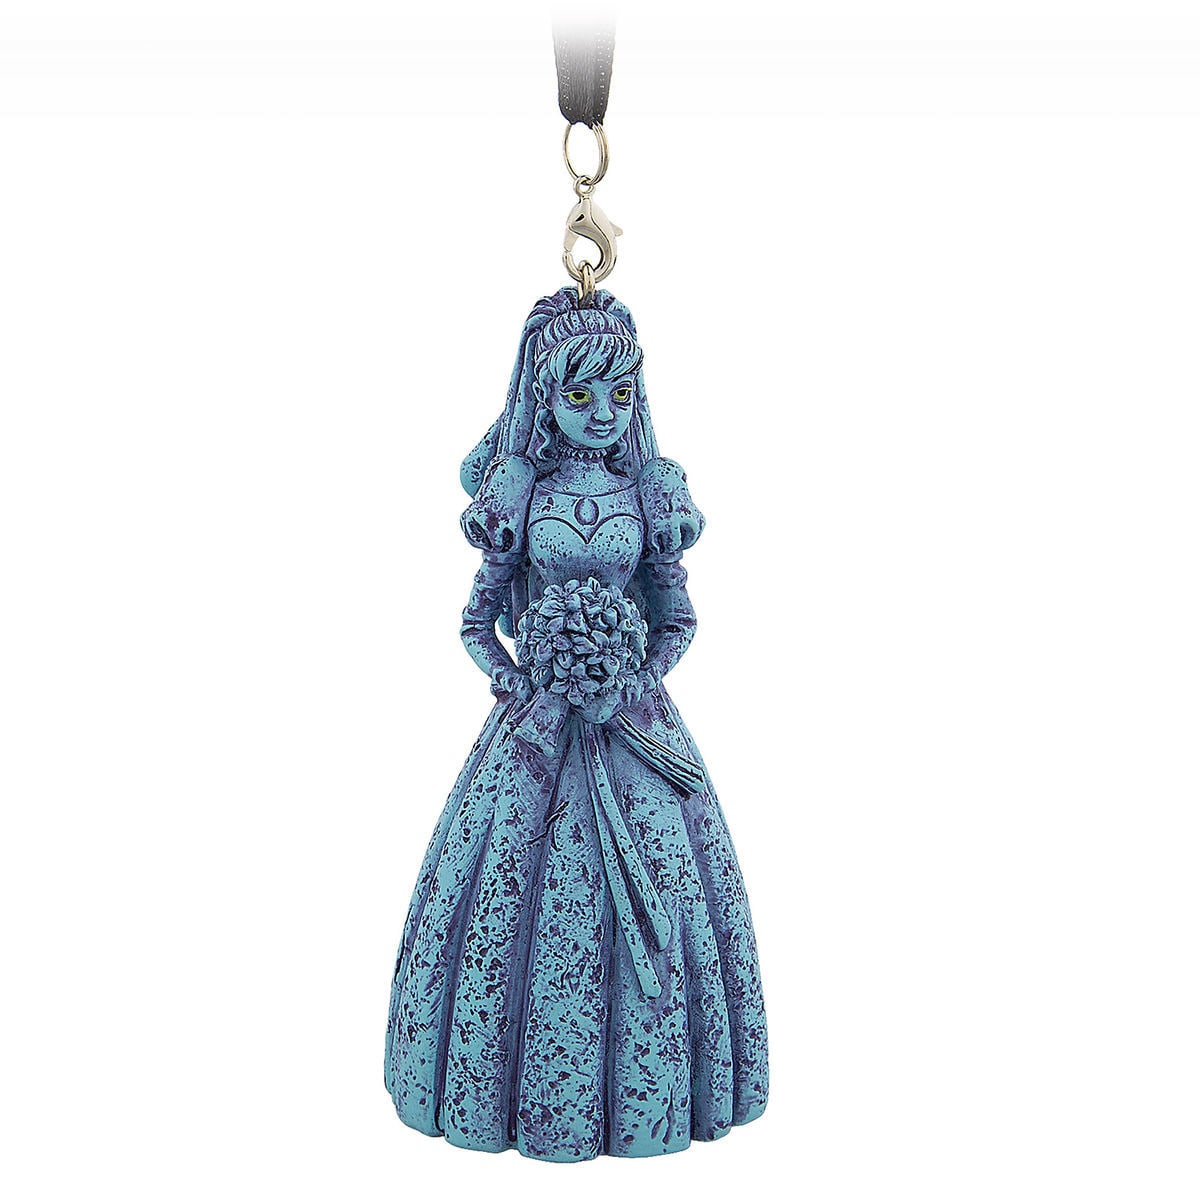 Bride Figural Ornament - The Haunted Mansion